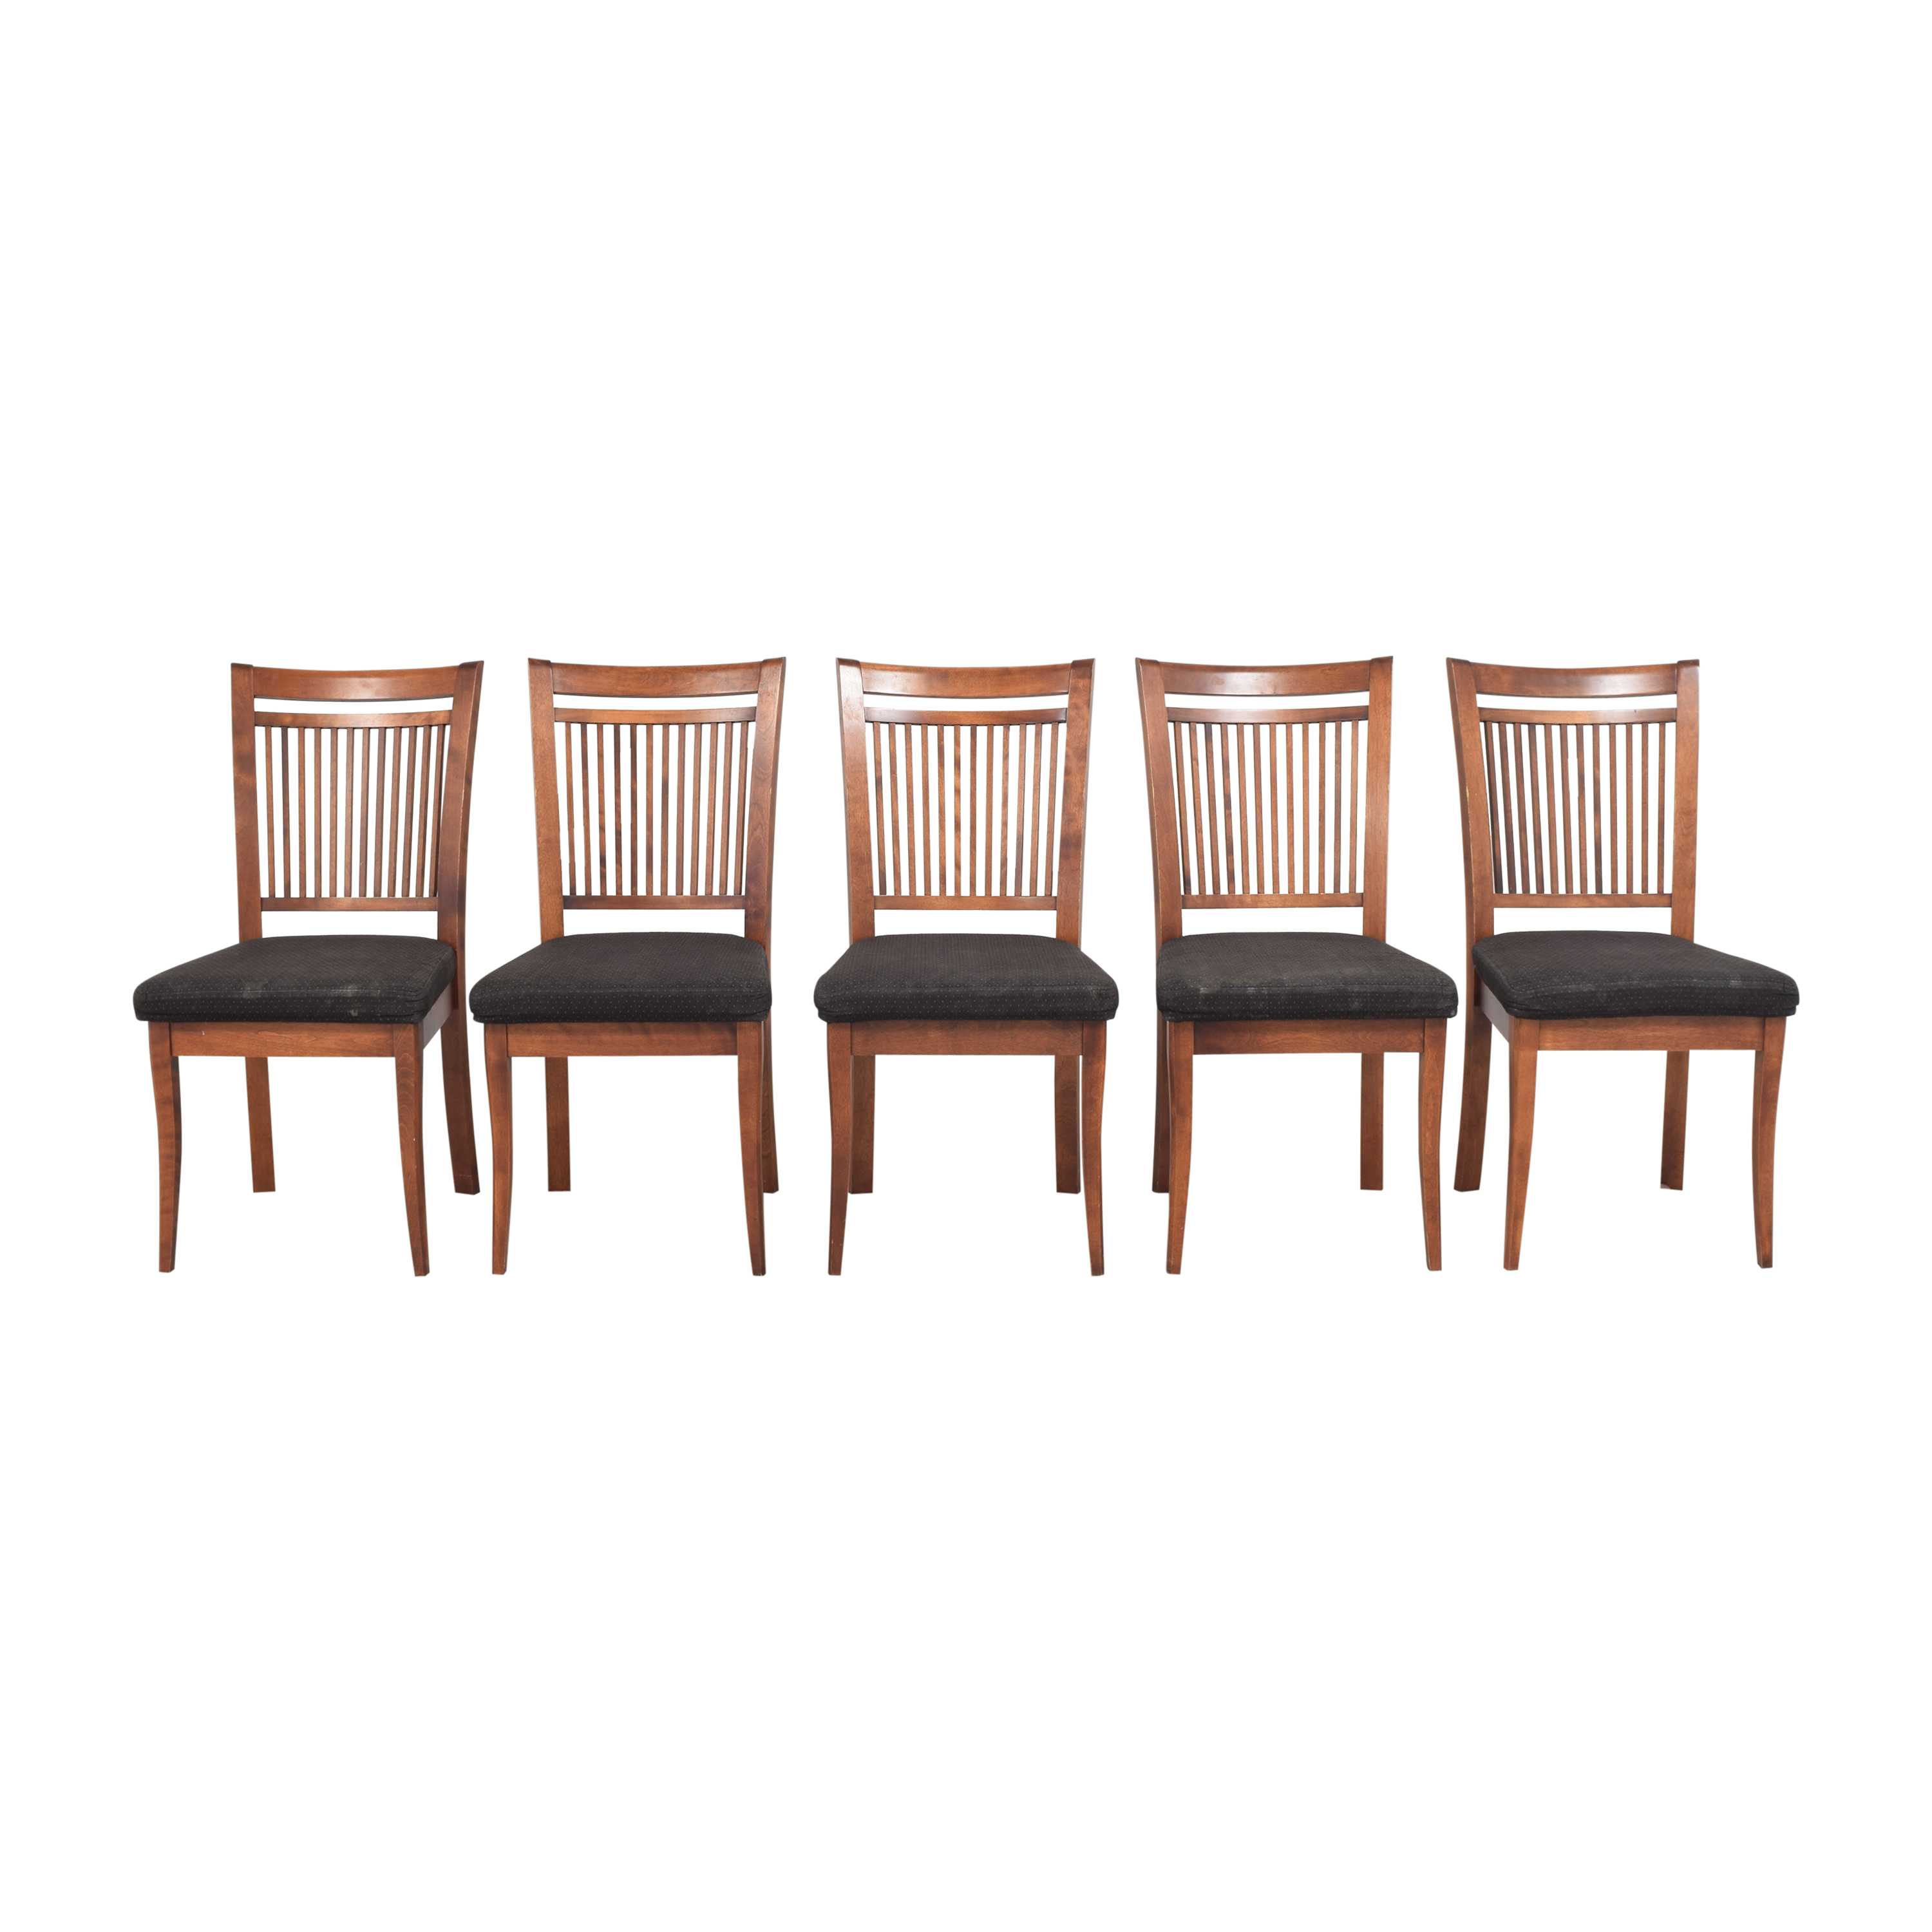 Dinec Dinec Slat Back Dining Chairs  price